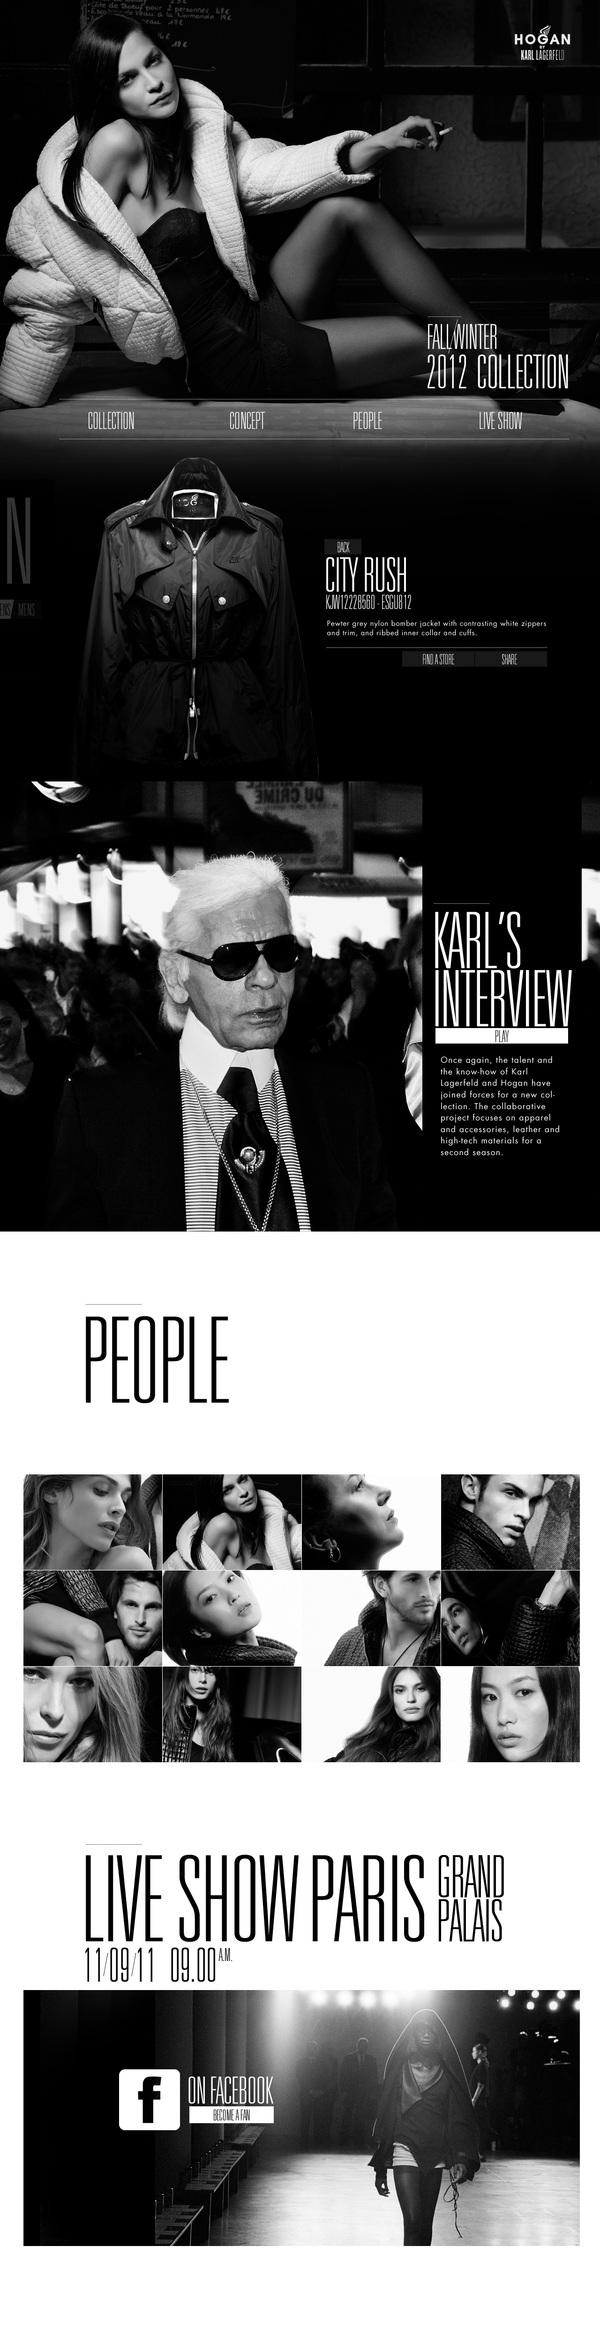 HOGAN BY KARL LAGERFELD on Web Design Served